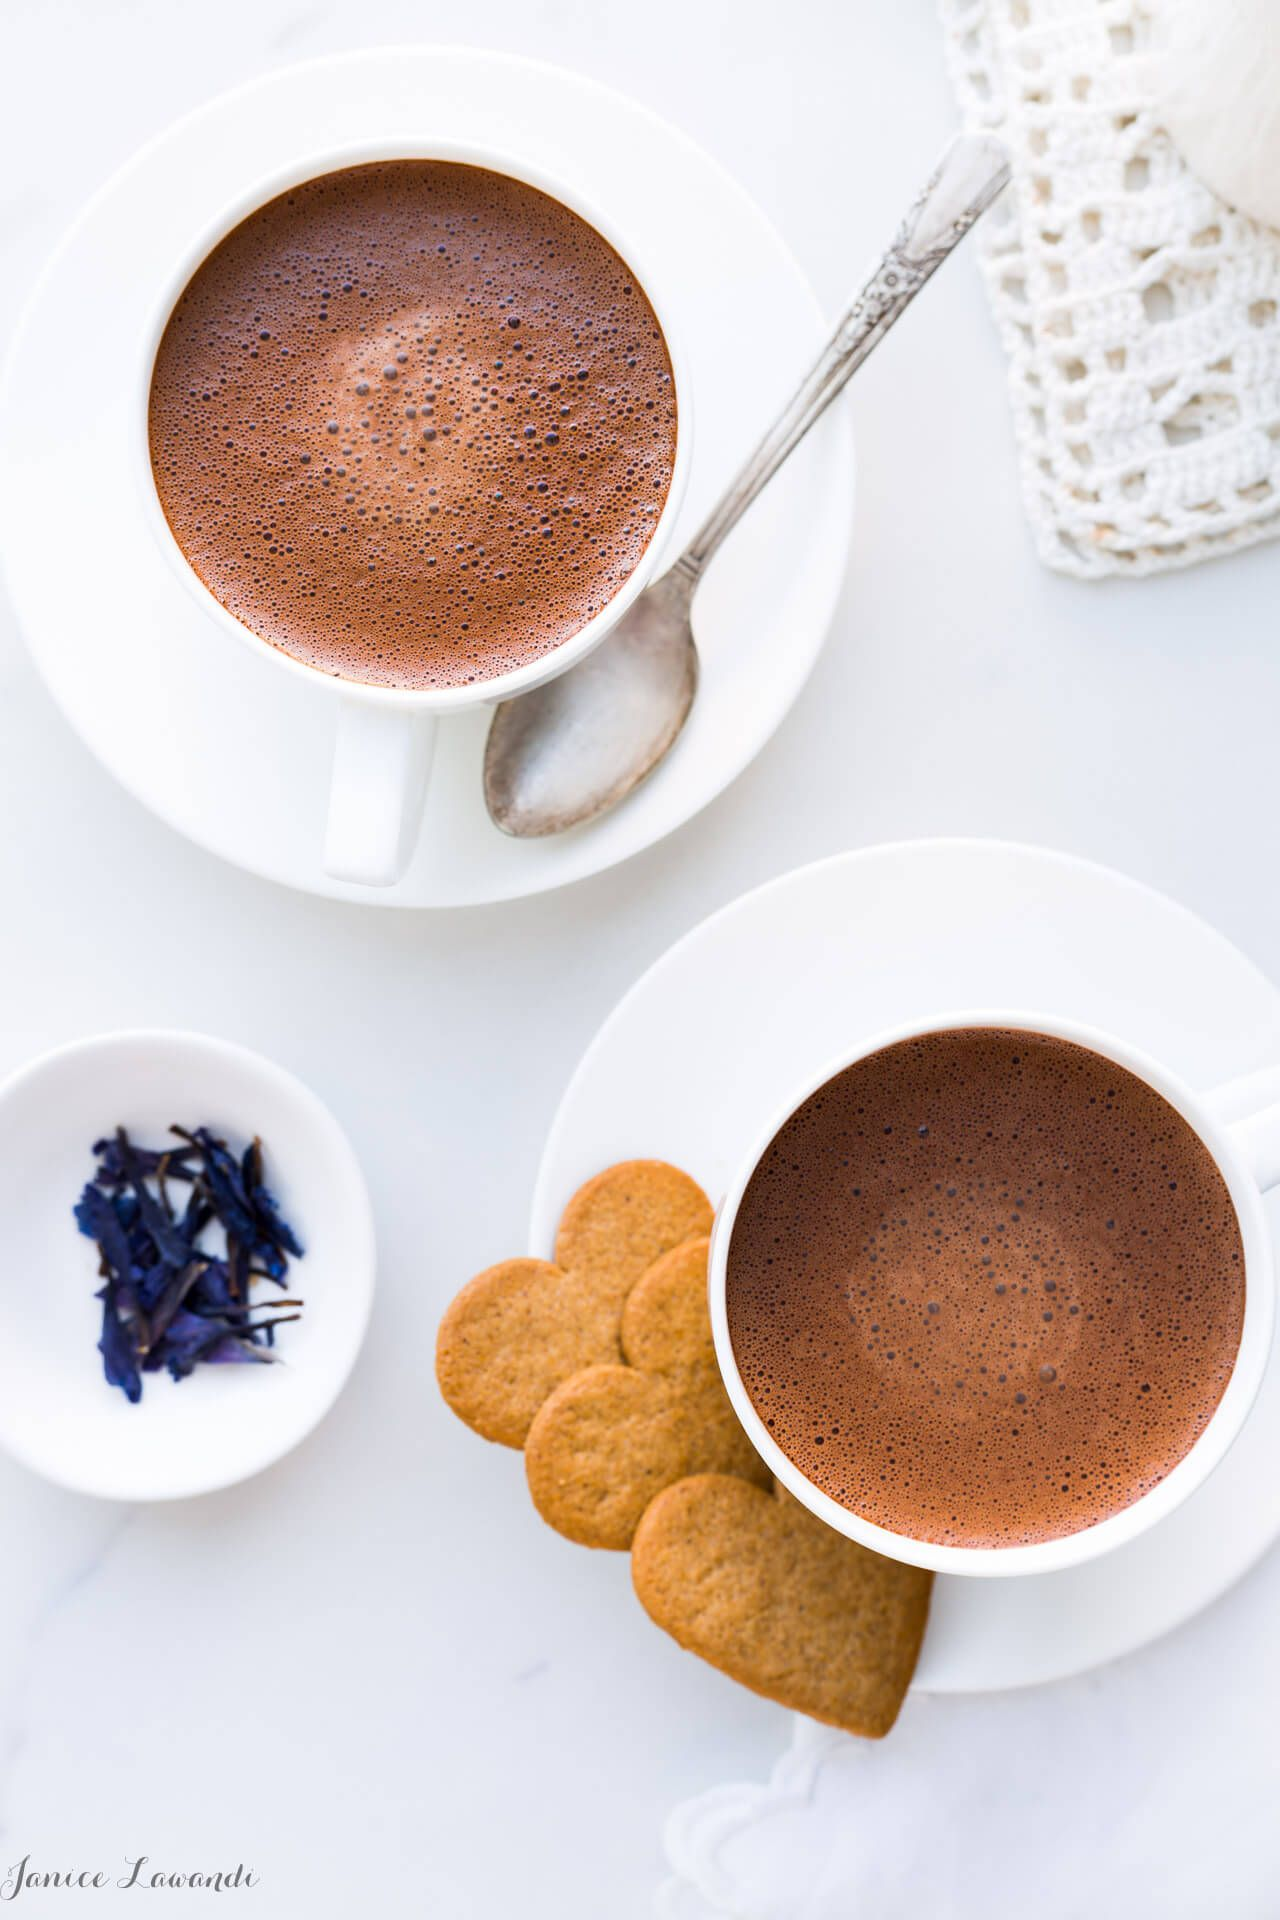 Homemade Dark Hot Chocolate With Real Chocolate Recipe Sipping Chocolate Recipe Hot Chocolate Recipes Hot Winter Drink Recipes